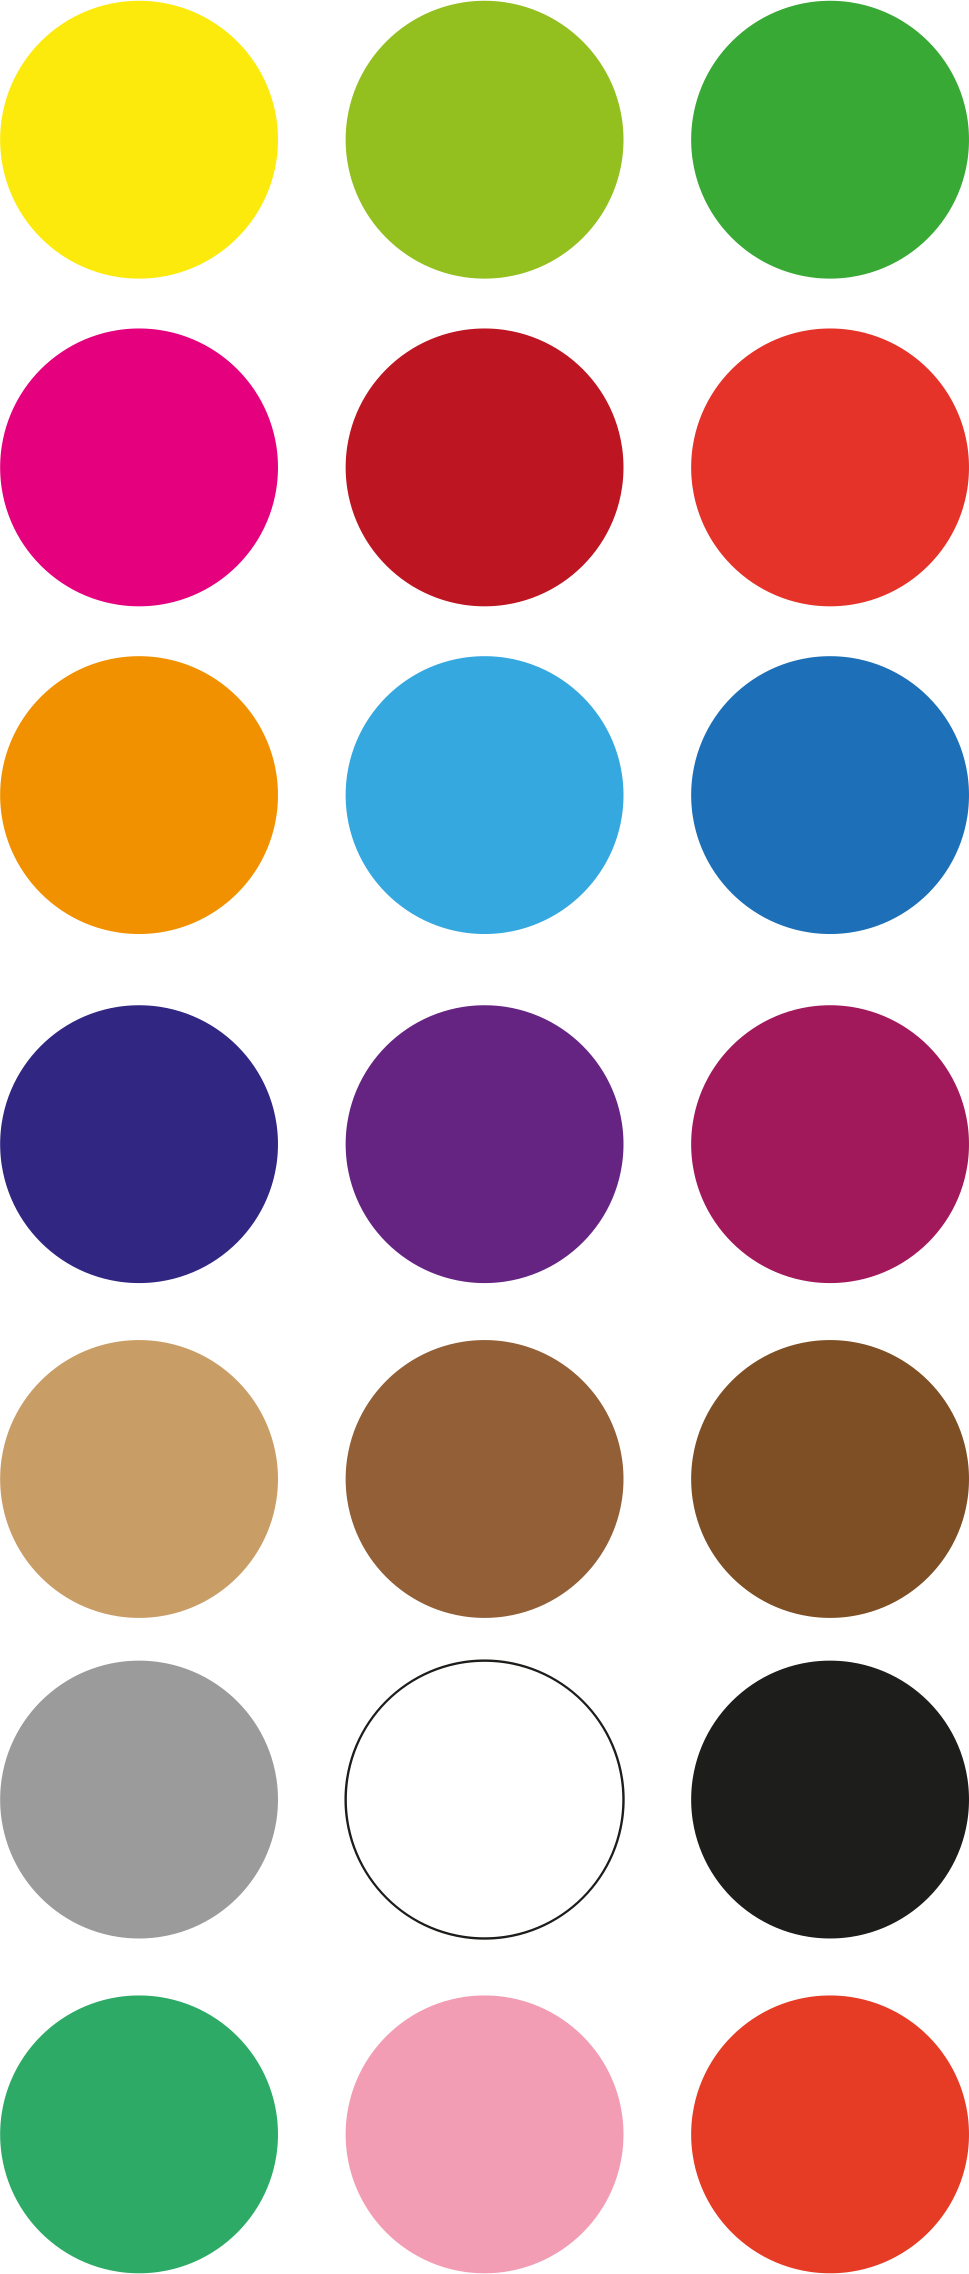 color palette by osfor.org